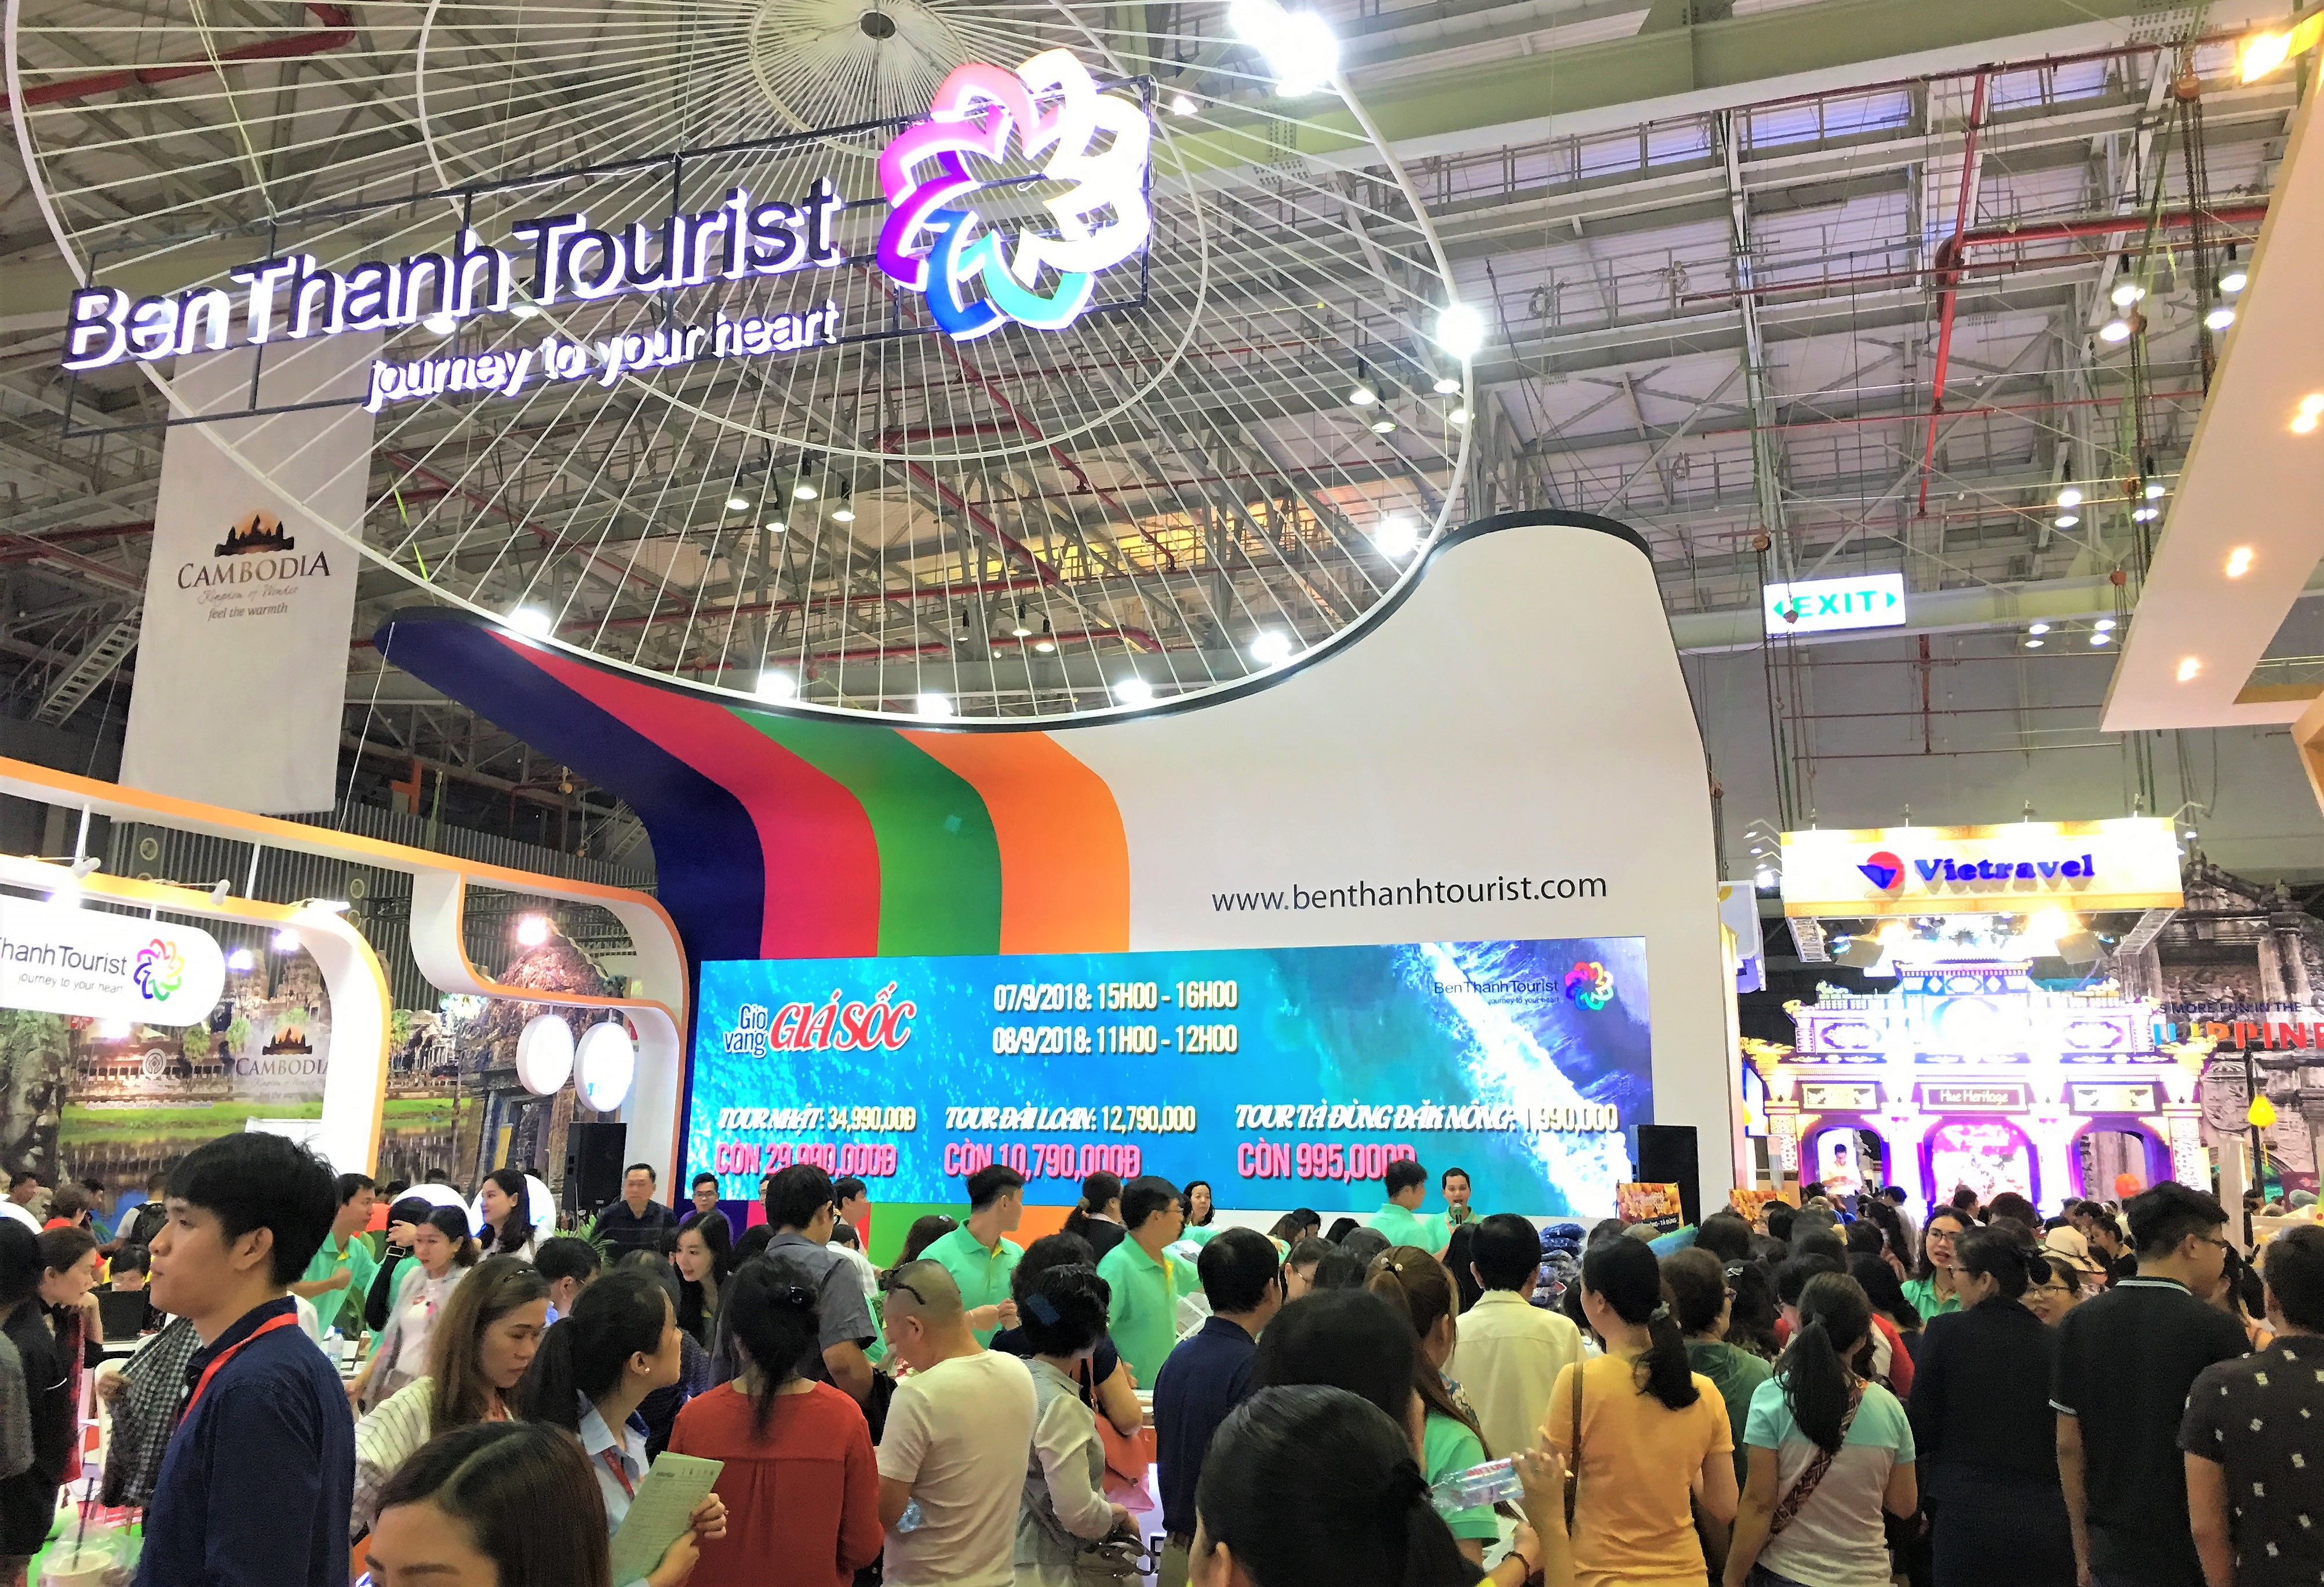 Trade Fair Stands Definition : Ite hcmc: mekongs largest travel event home